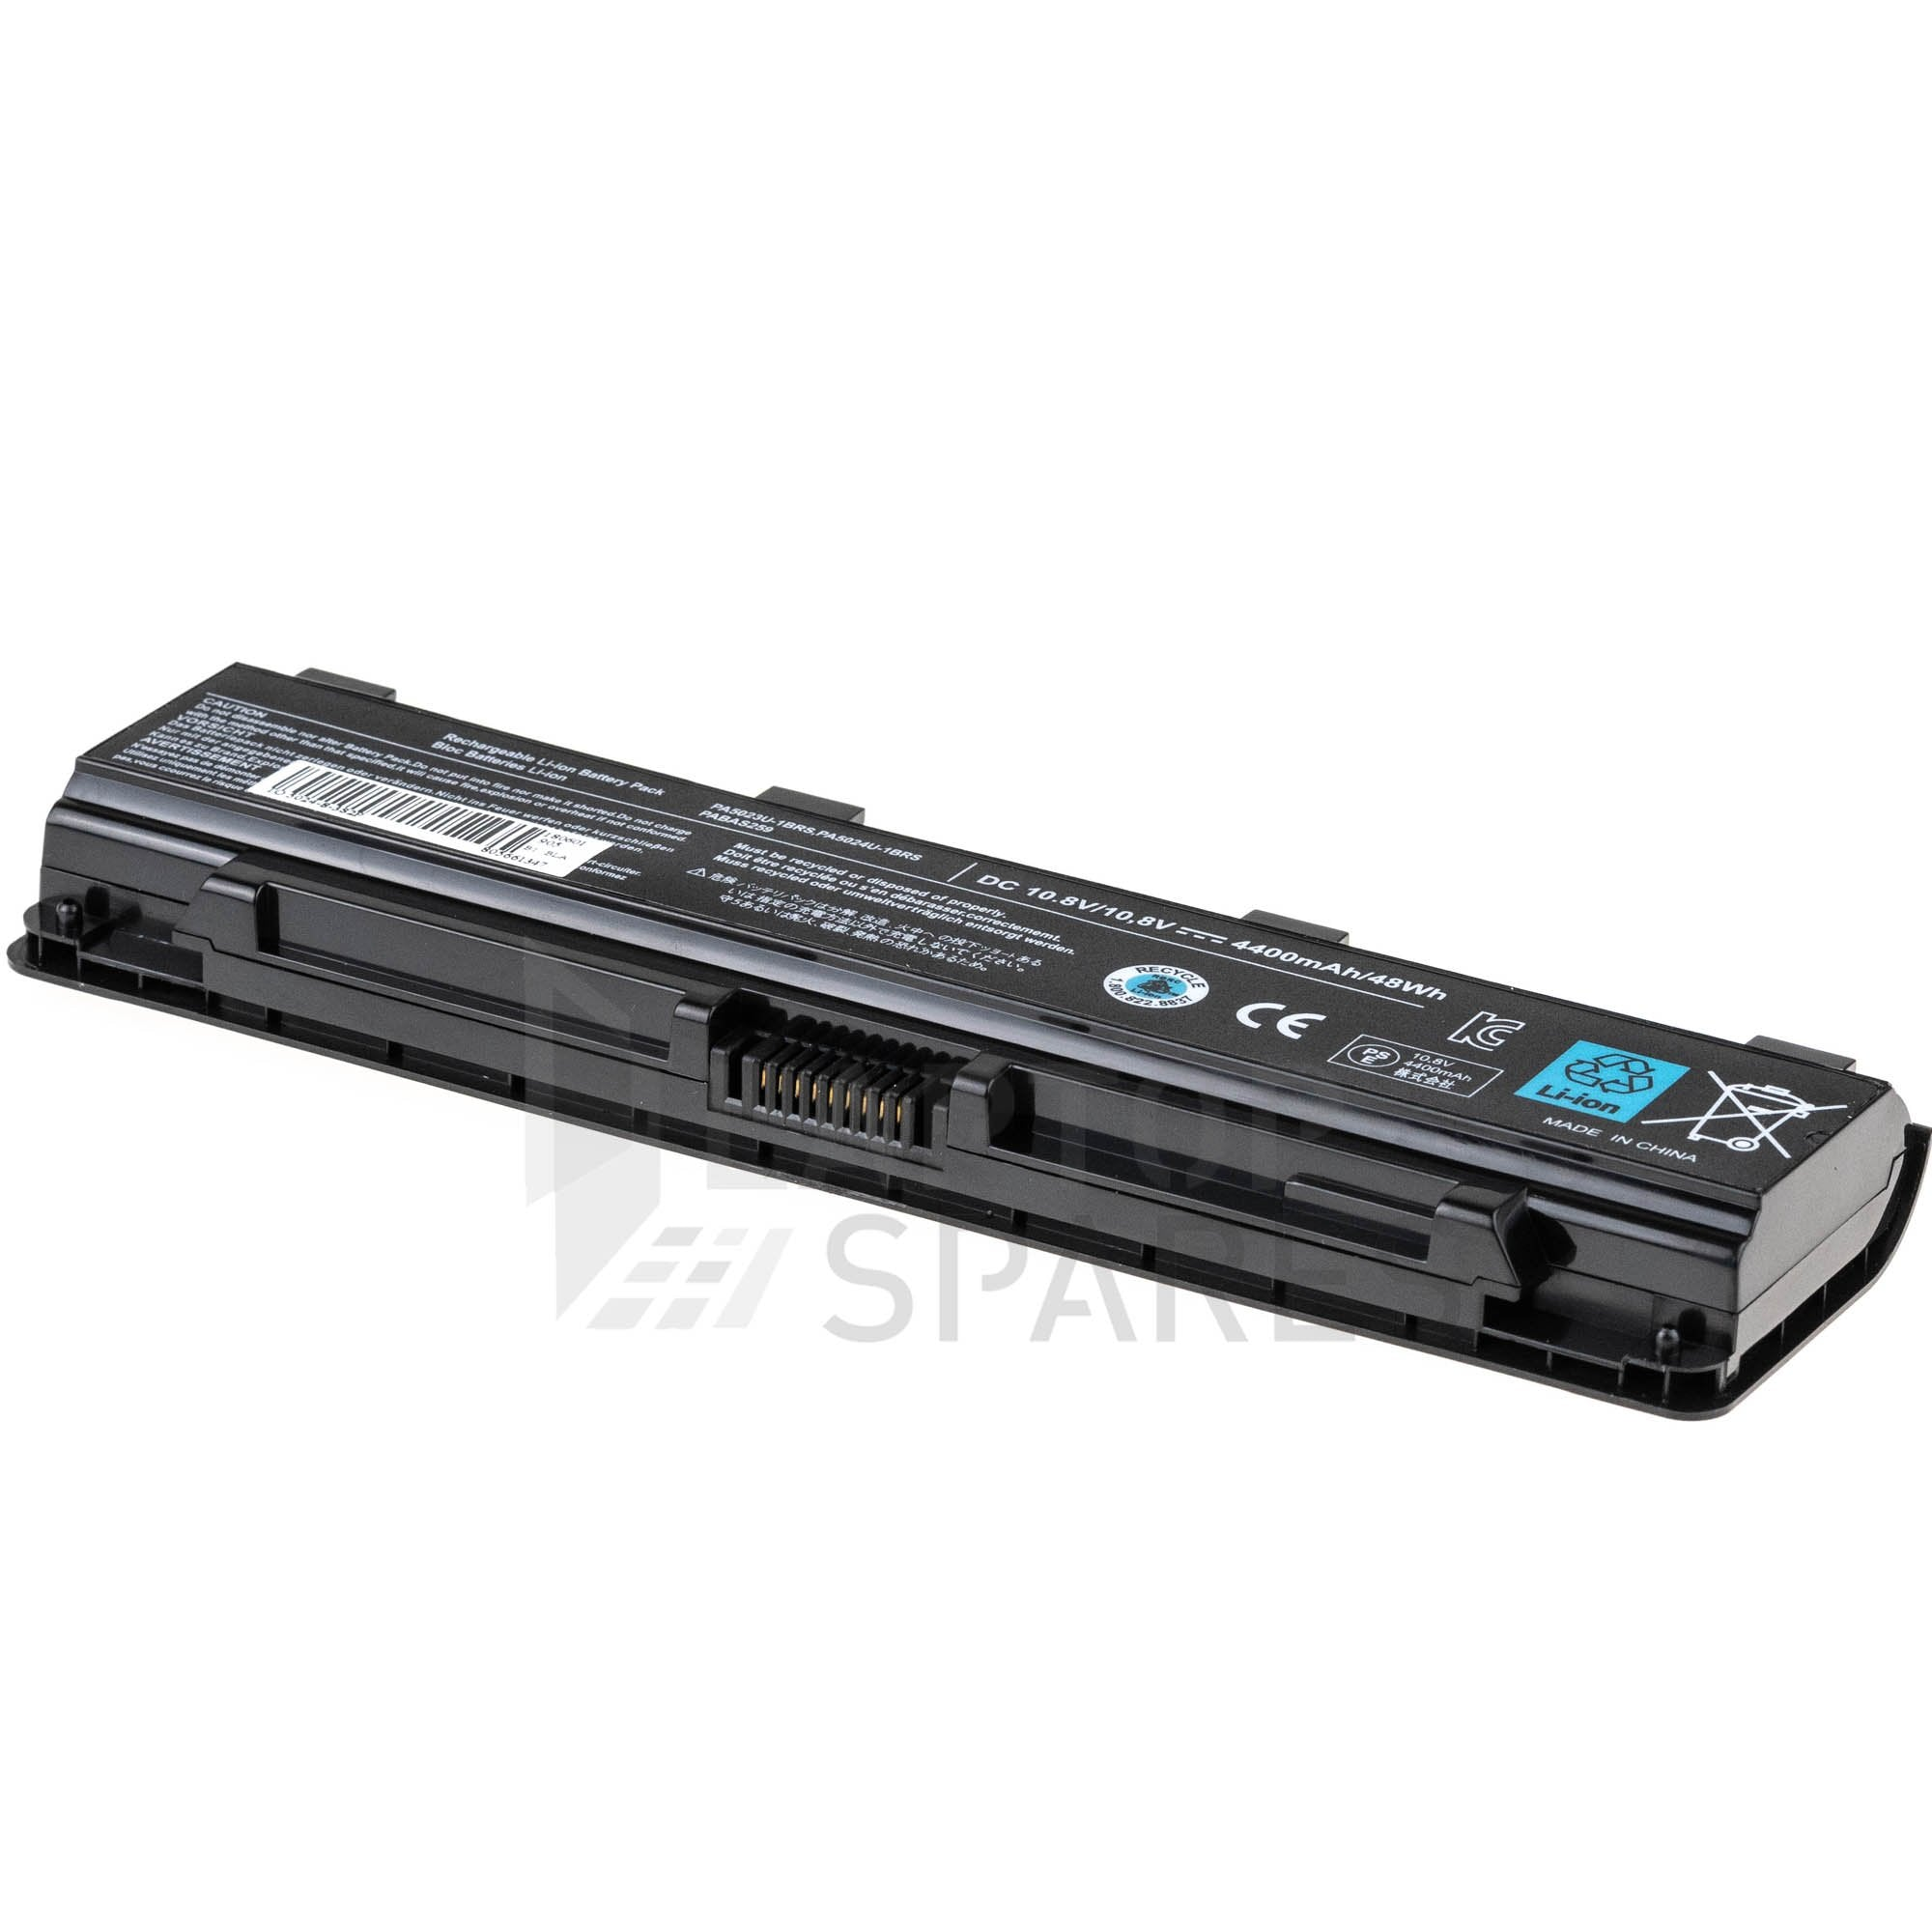 Toshiba Satellite Pro C805 C805D 4400mAh 6 Cell Battery